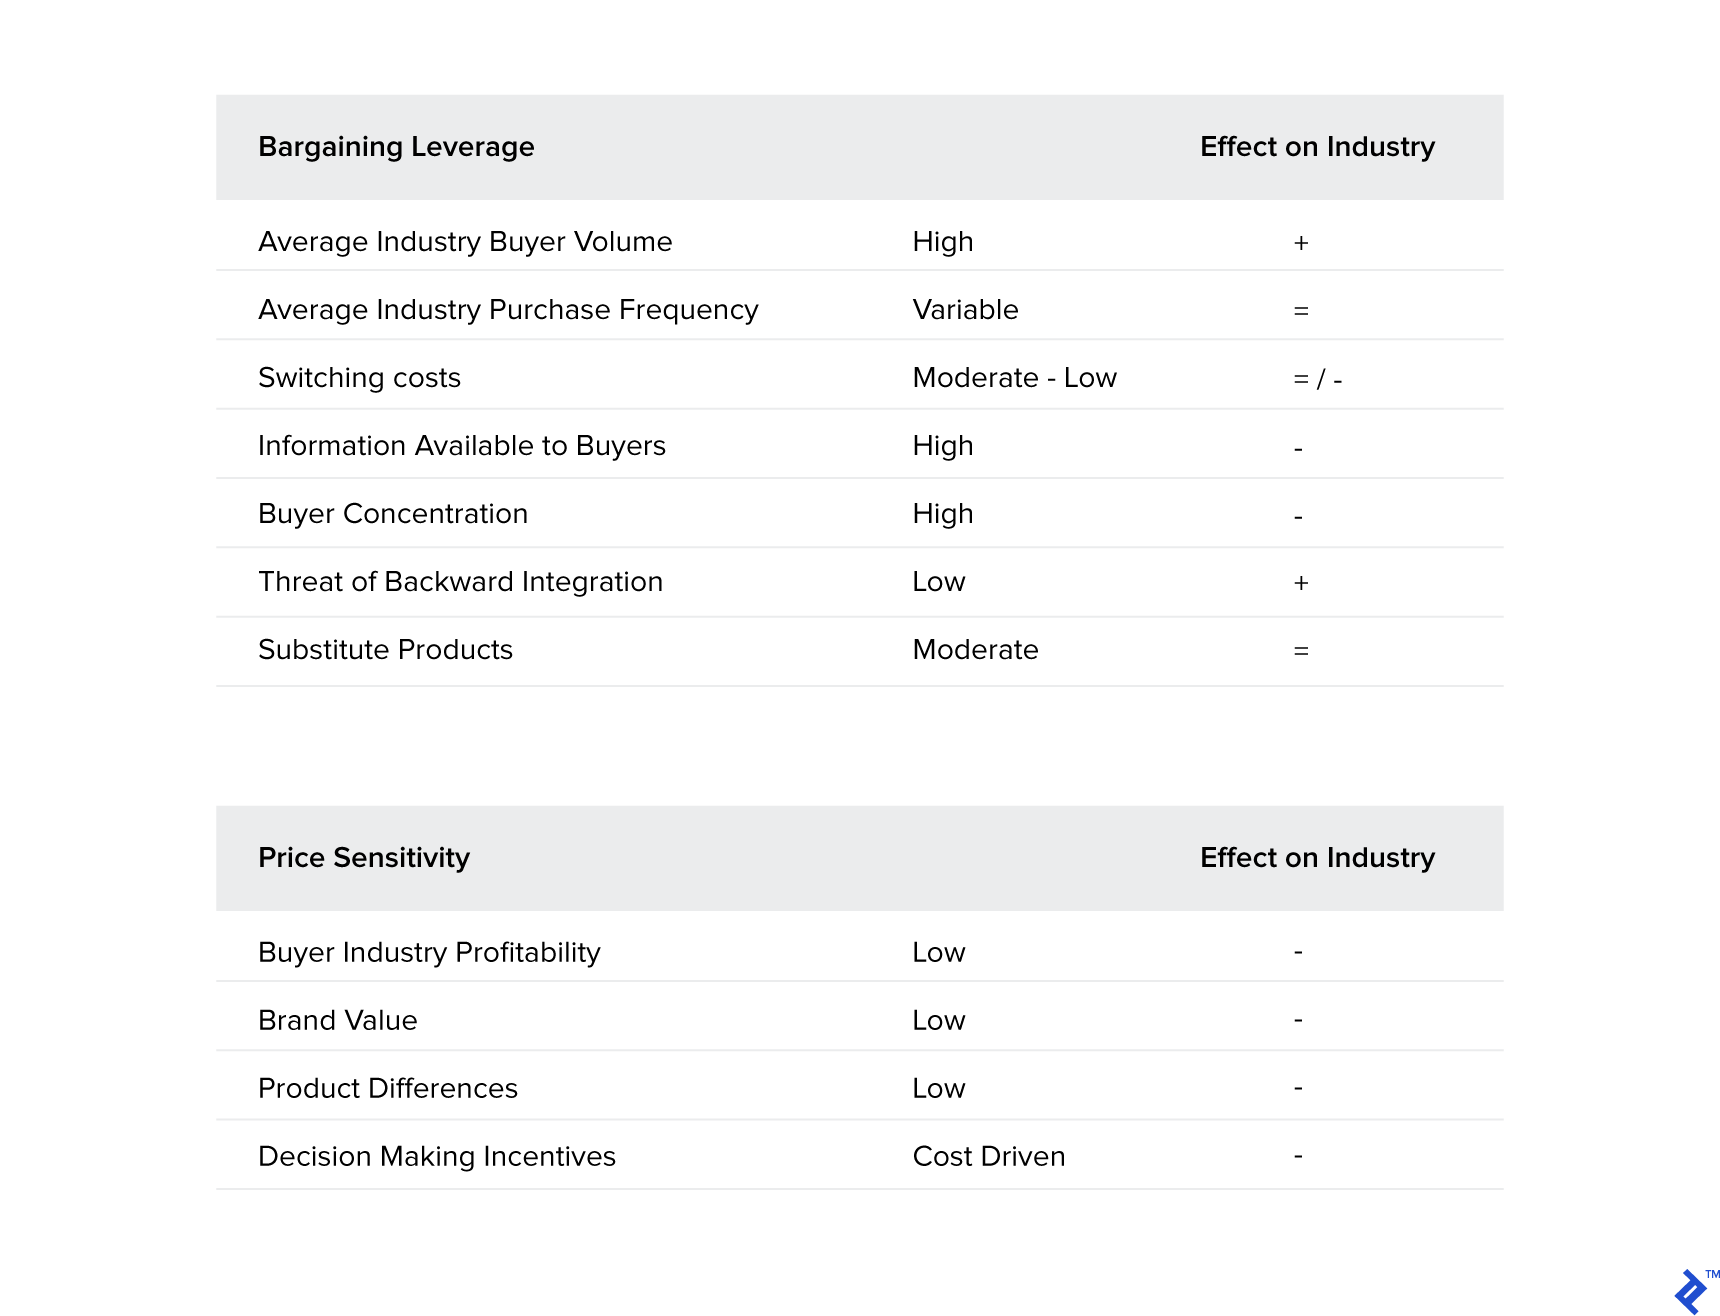 Data tables showing bargaining leverage and price sensitivity